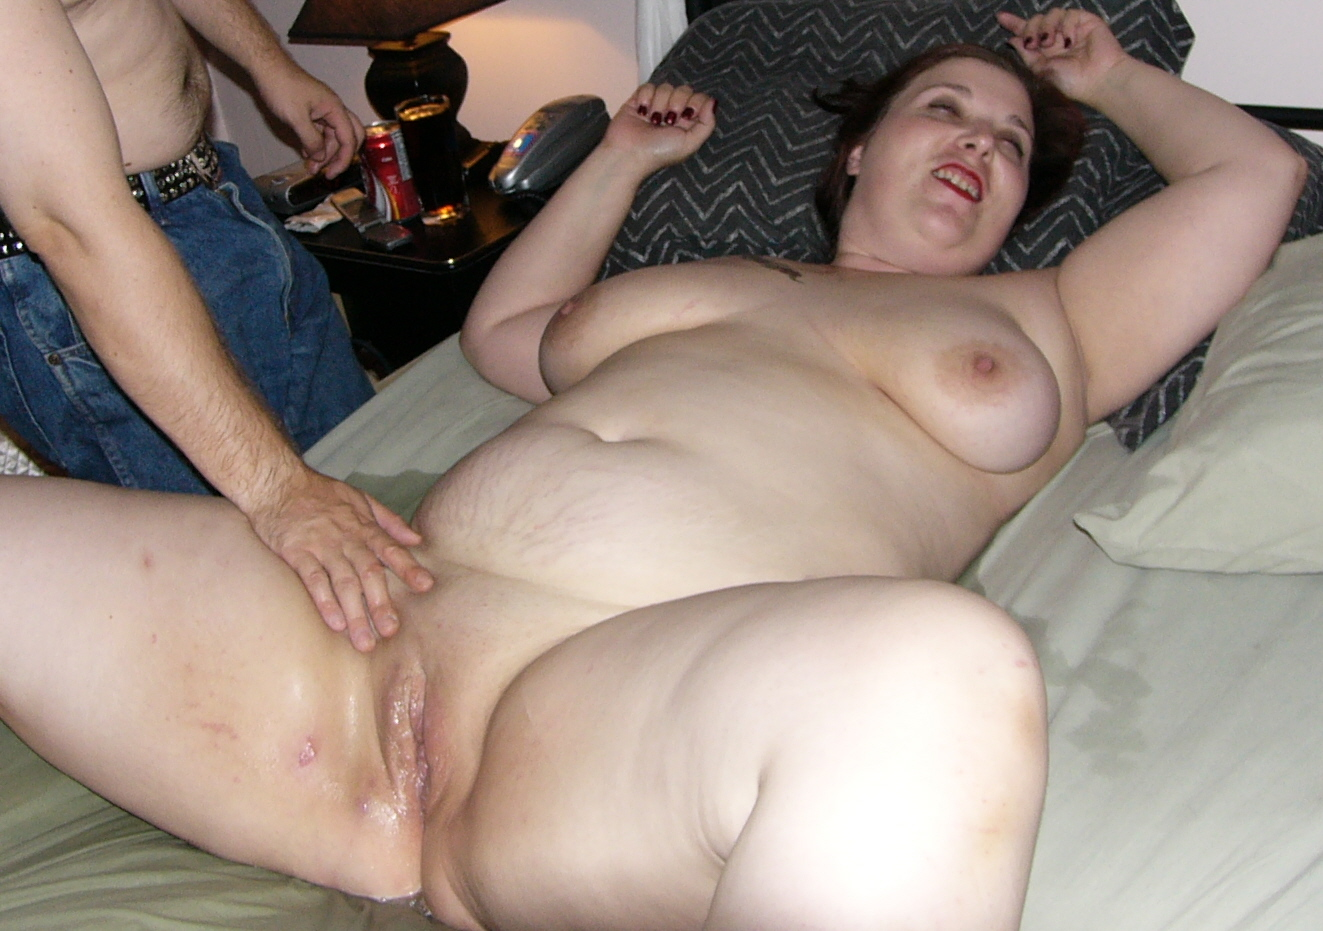 fat-amateur-housewife-pics-bisexual-collection-movie-net-video